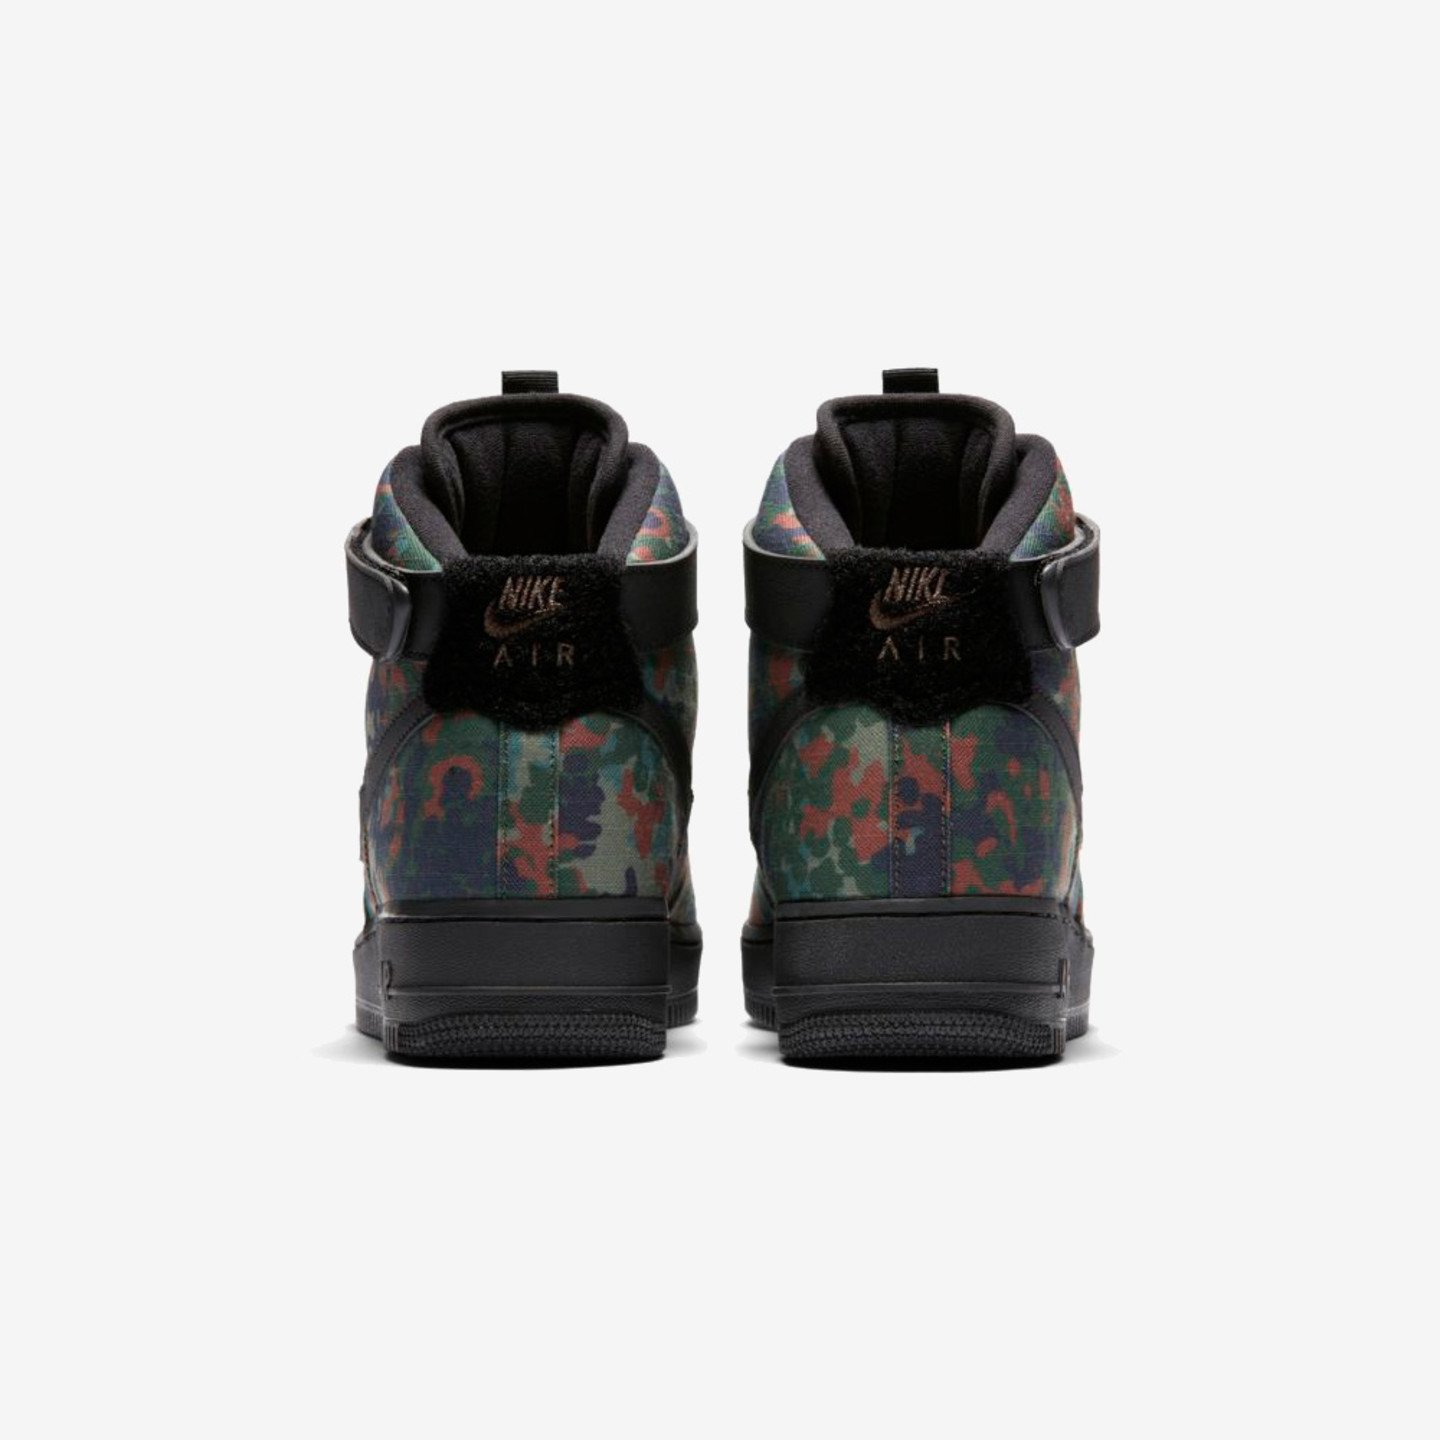 Nike Air Force 1 High 07 LV8 'Germany' Alligator / Black / Safari BQ1669-300